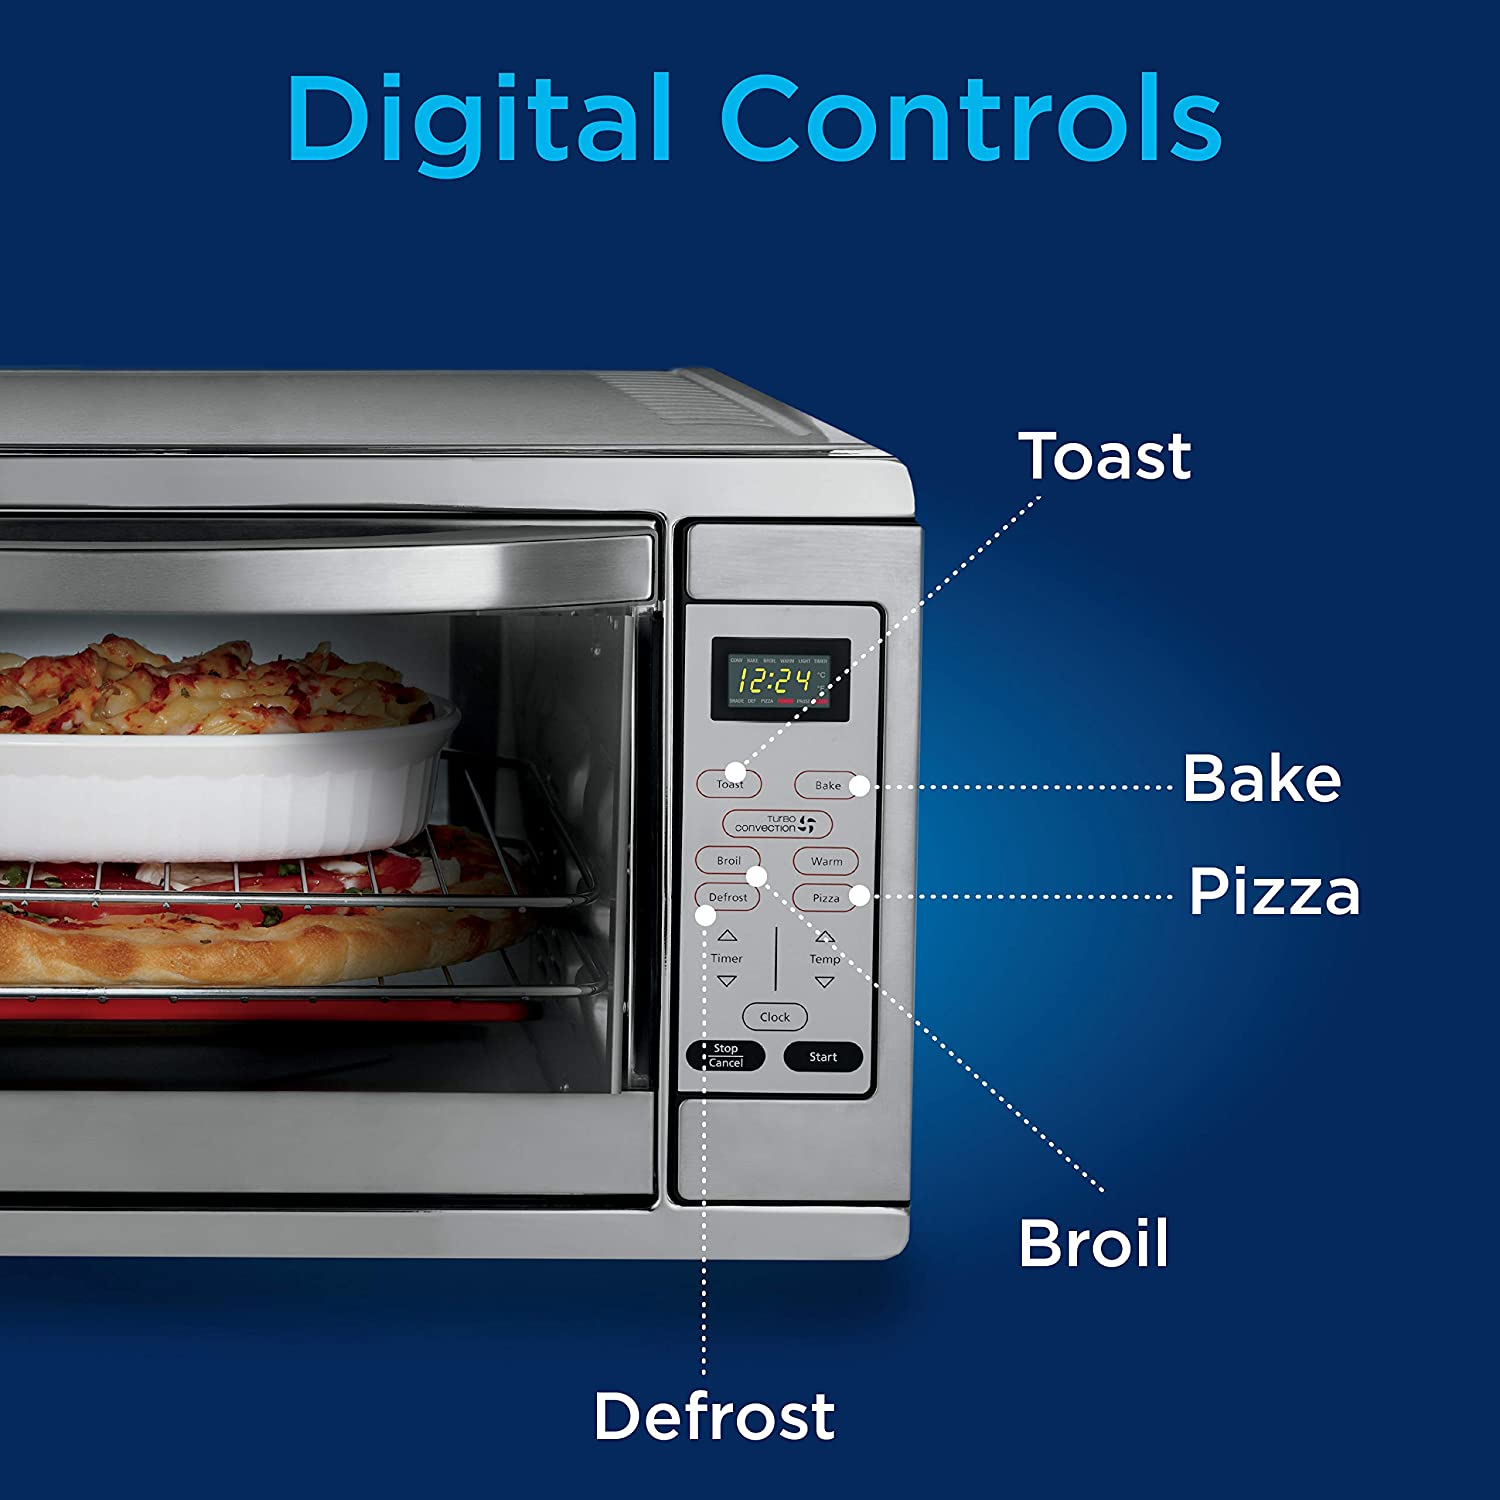 Best toaster oven 2021 - Extra large toaster oven